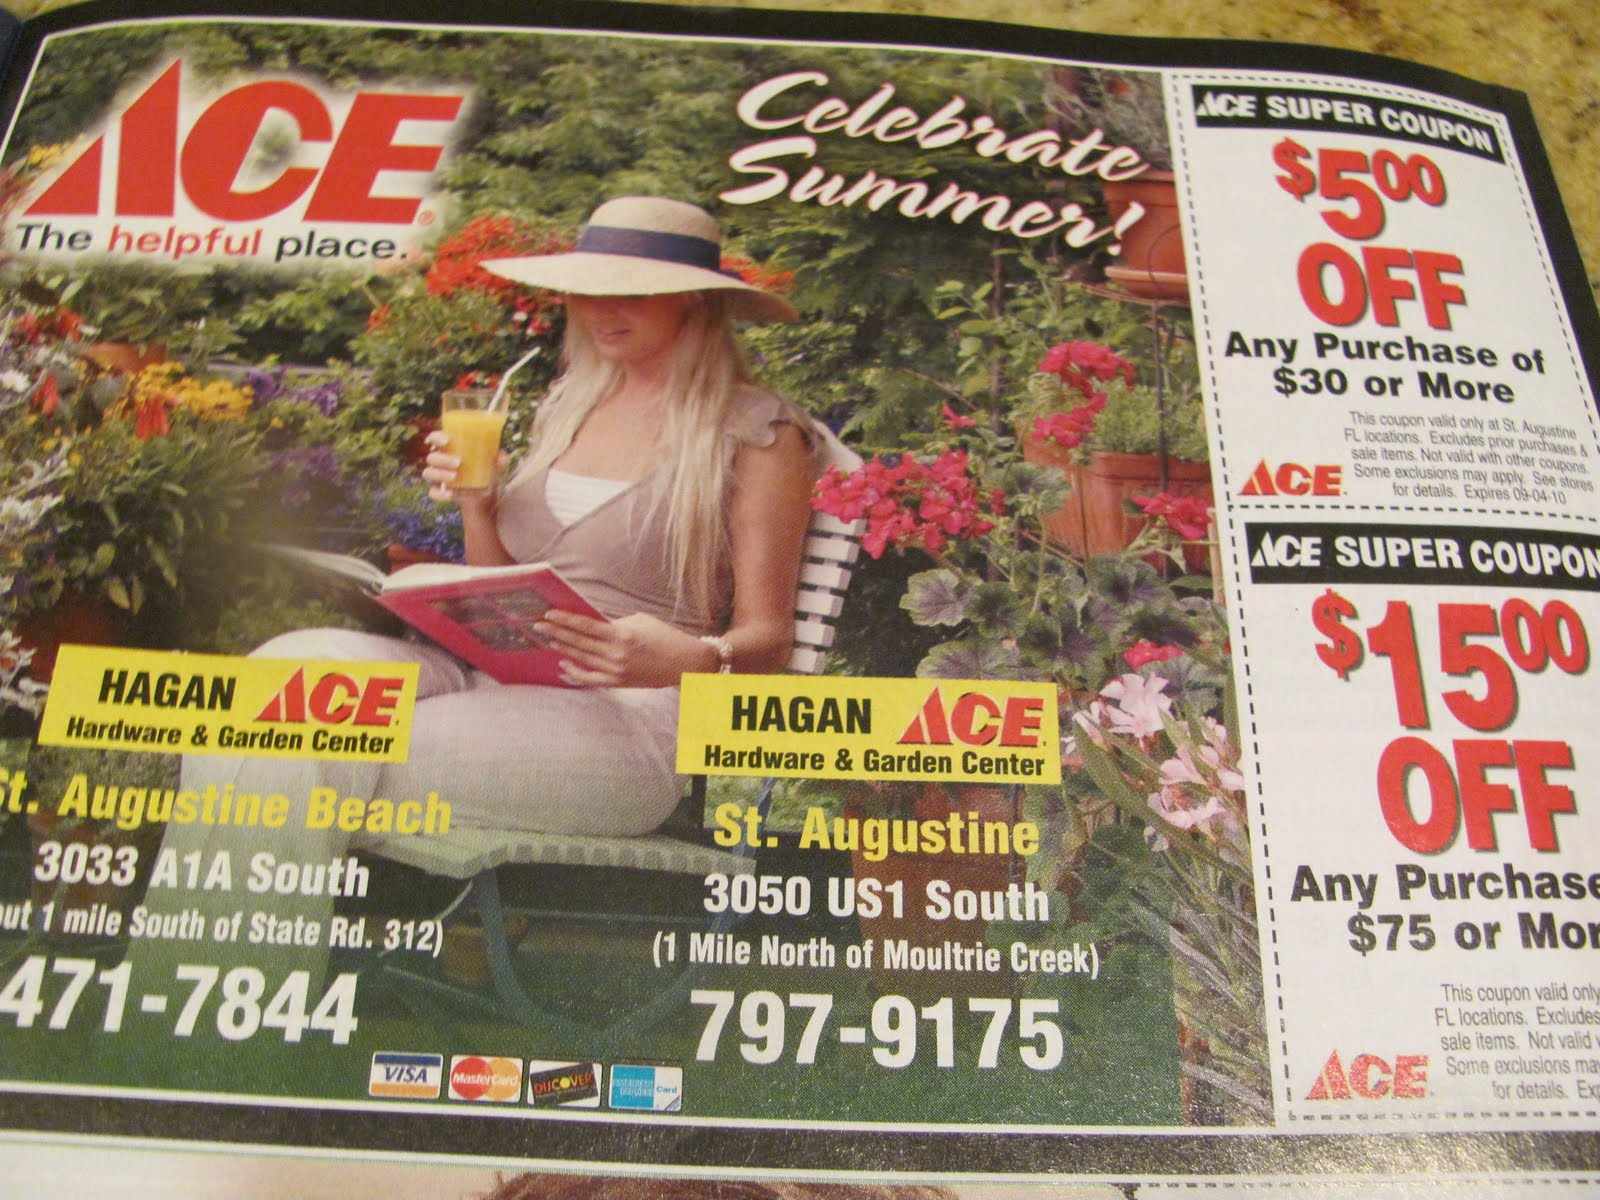 st augustine savers coupon workshop ace hardware coupon in the mint